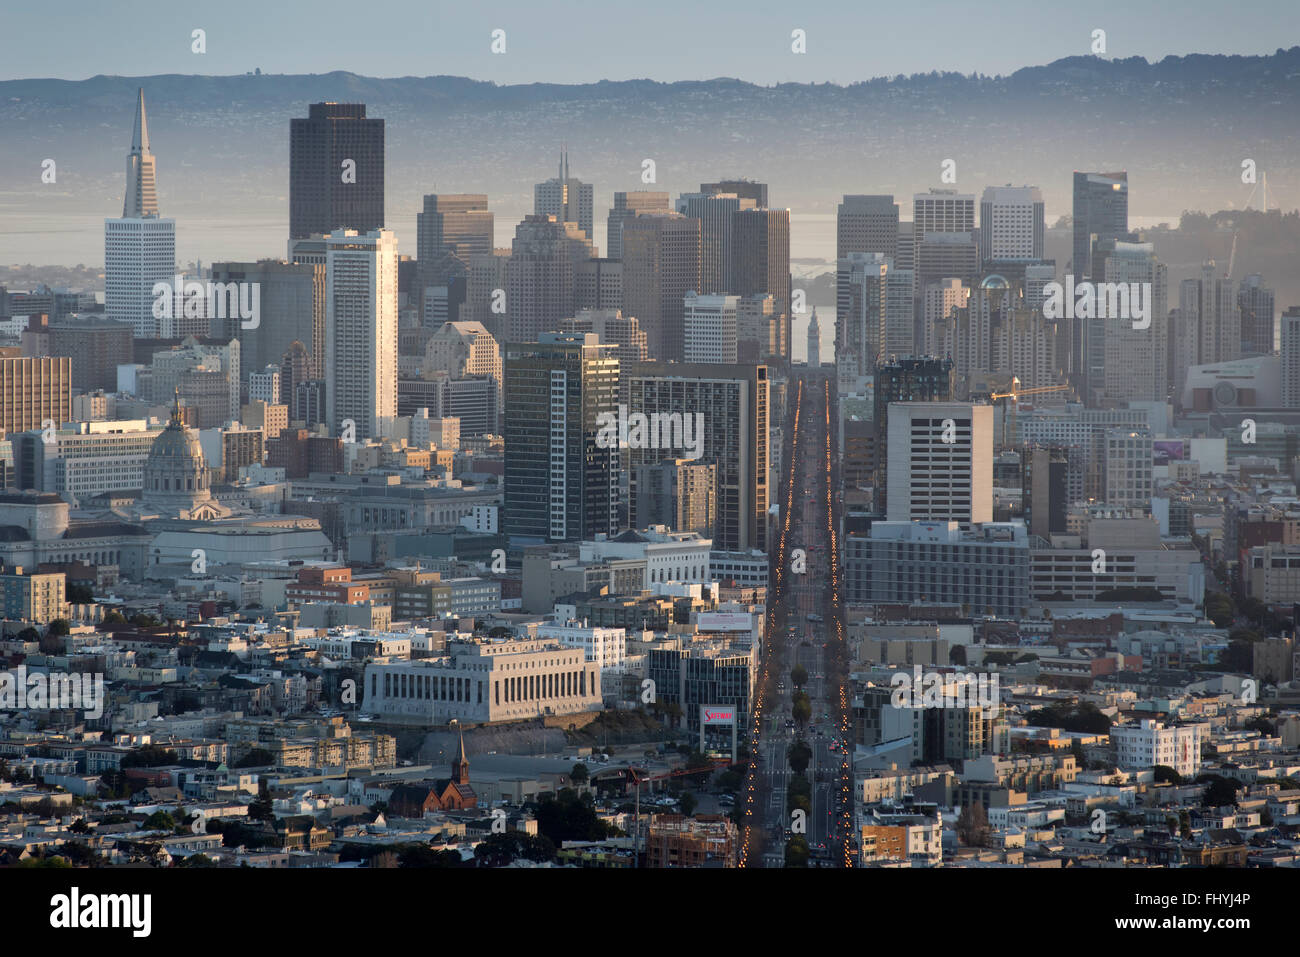 Downtown and financial district of San Francisco, as seen from Twin Peaks, early morning. California, United States - Stock Image